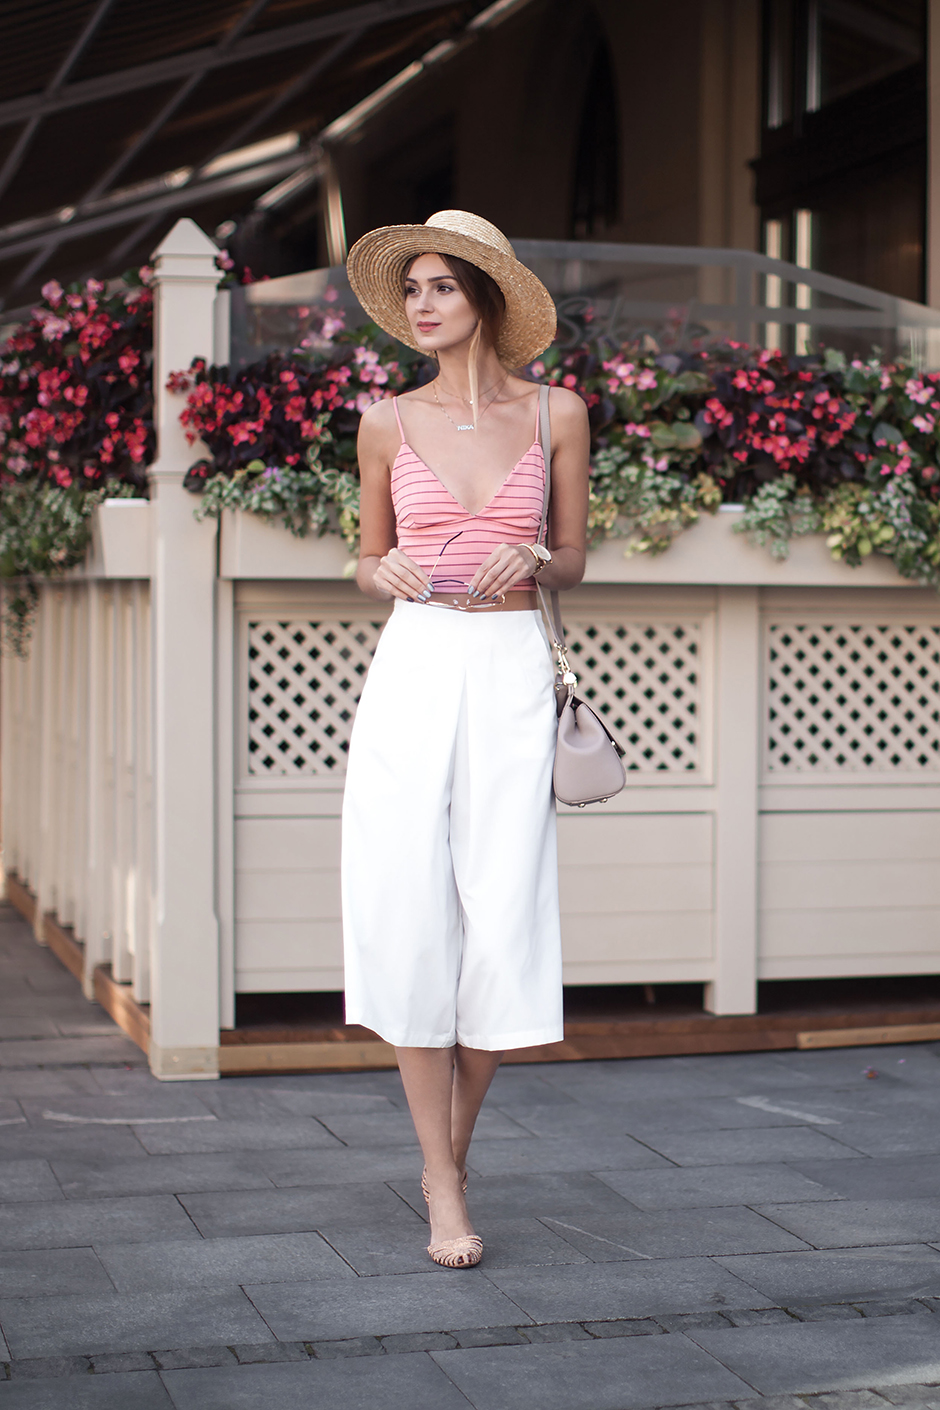 fashion-look-white-culottes-crop-top-fedora-hat